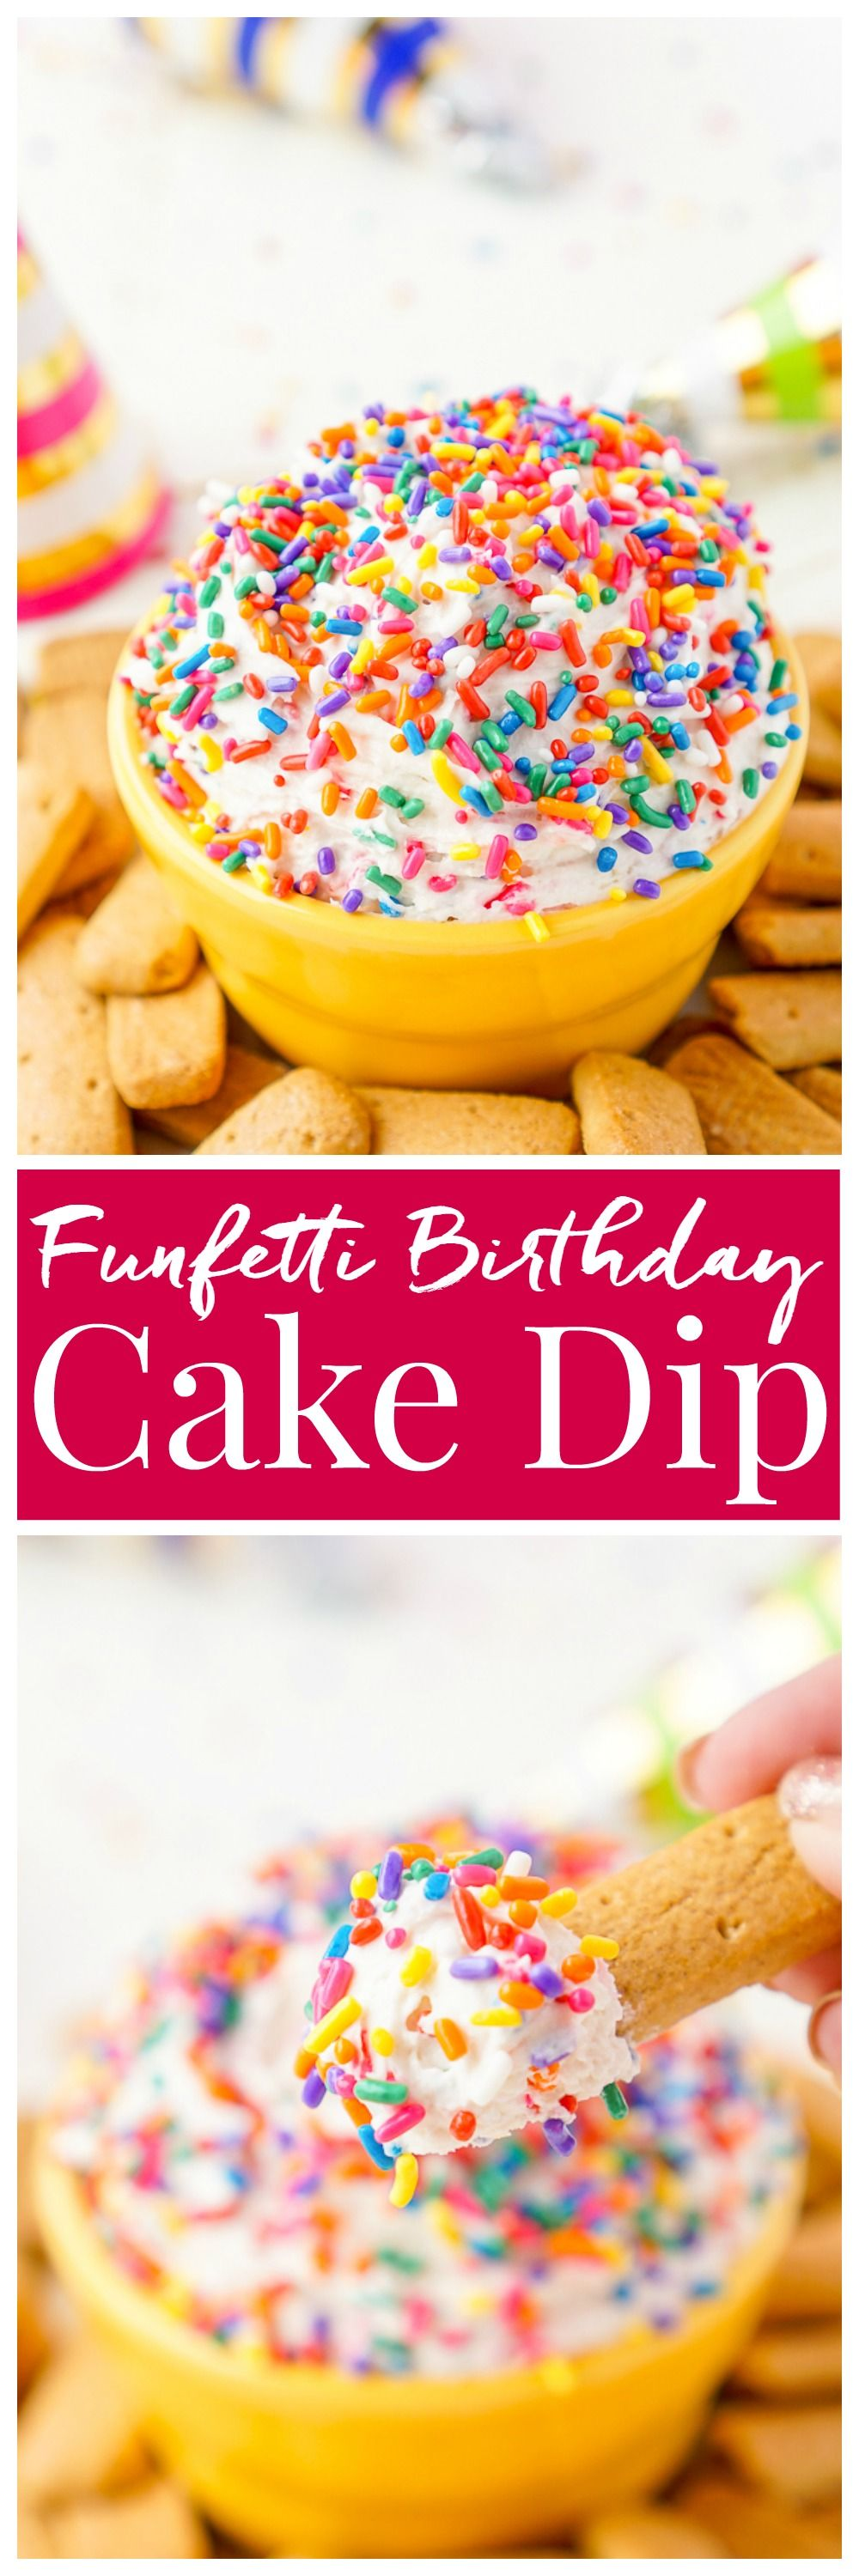 This Funfetti Birthday Cake Dip is perfect for serving up at parties